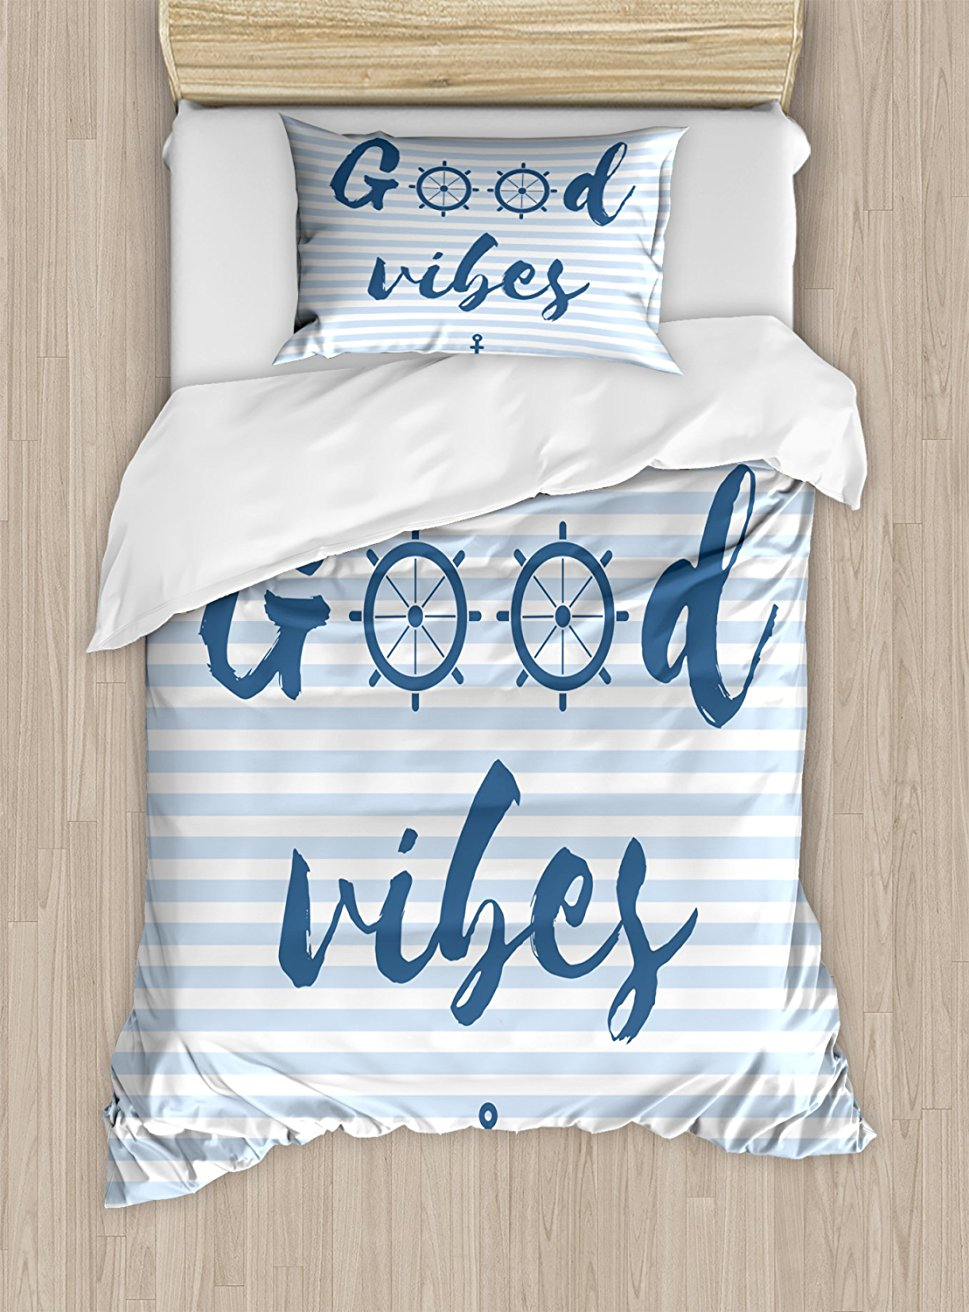 Good Vibes Duvet Cover Set , Nautical Design with Stripes Brushstrokes Steering Wheels Anchor Icon, 4 Piece Bedding Set